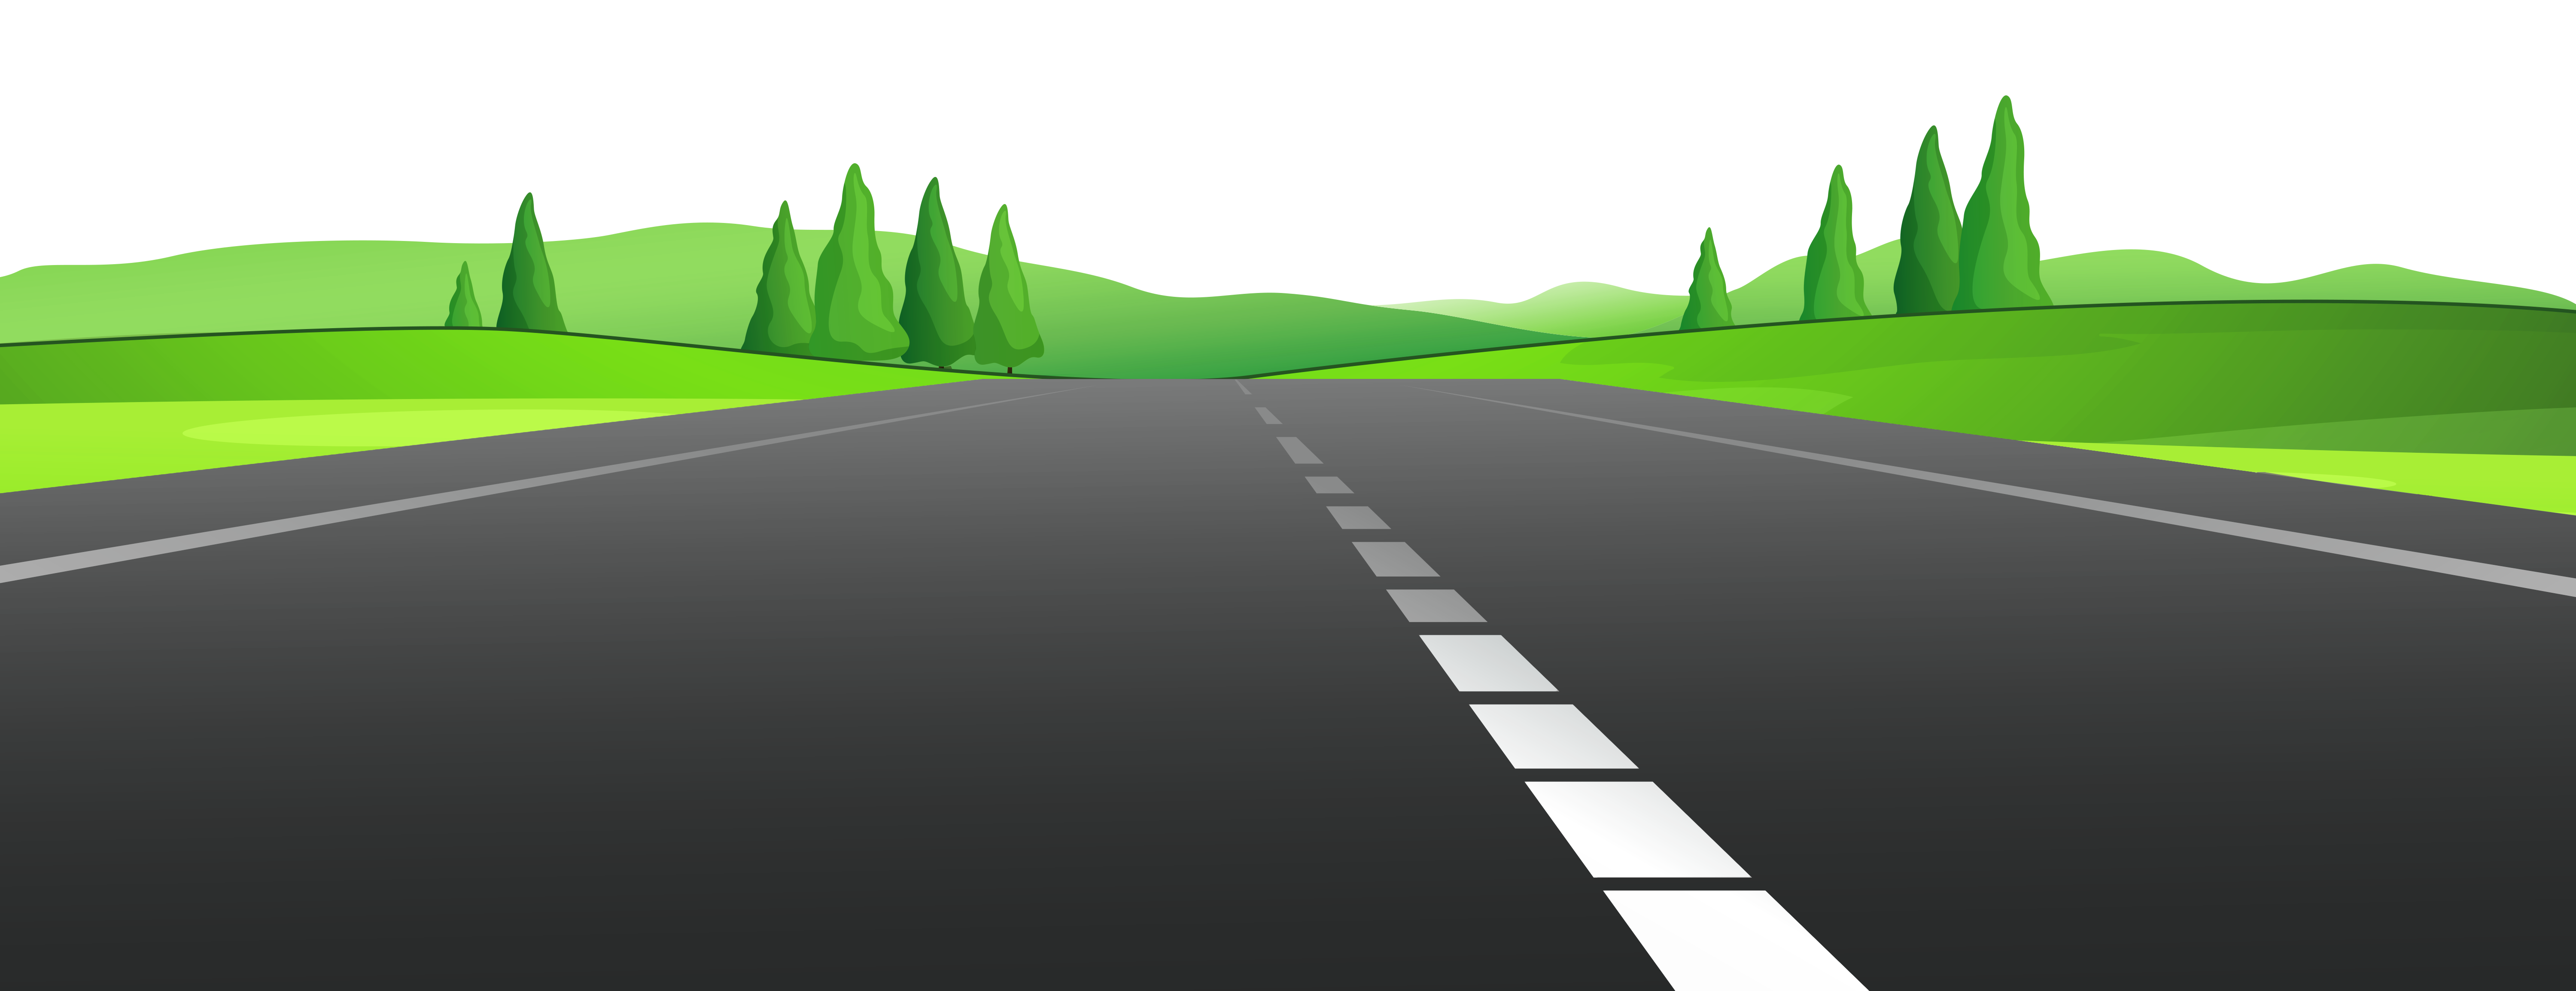 Freeway clipart road background #3